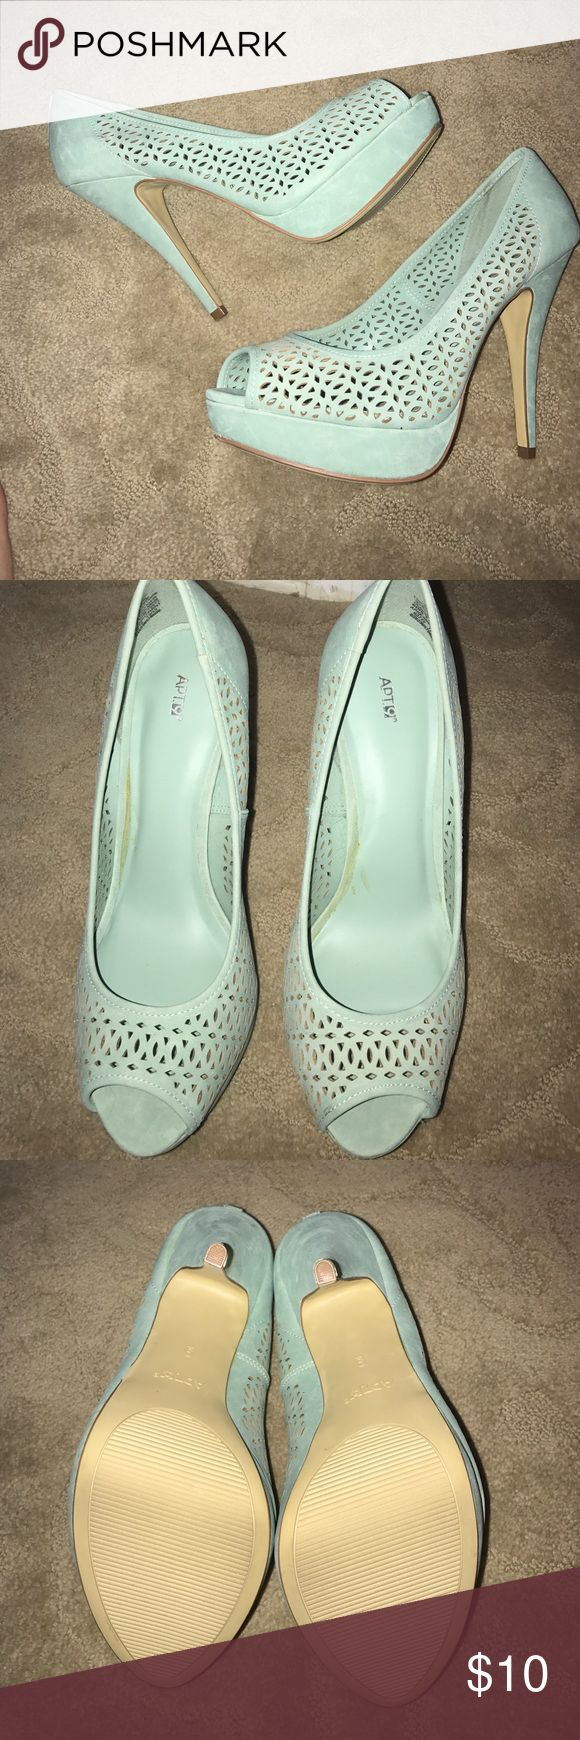 """Apt 9, Suede Aqua Heels, Size 9 Beautiful Apt 9 Suede light aqua heels.  Heel measures 5"""" with 1"""" platform in the front. Shoes Have never been worn out. Have light marks from storage. Apt. 9 Shoes Heels"""